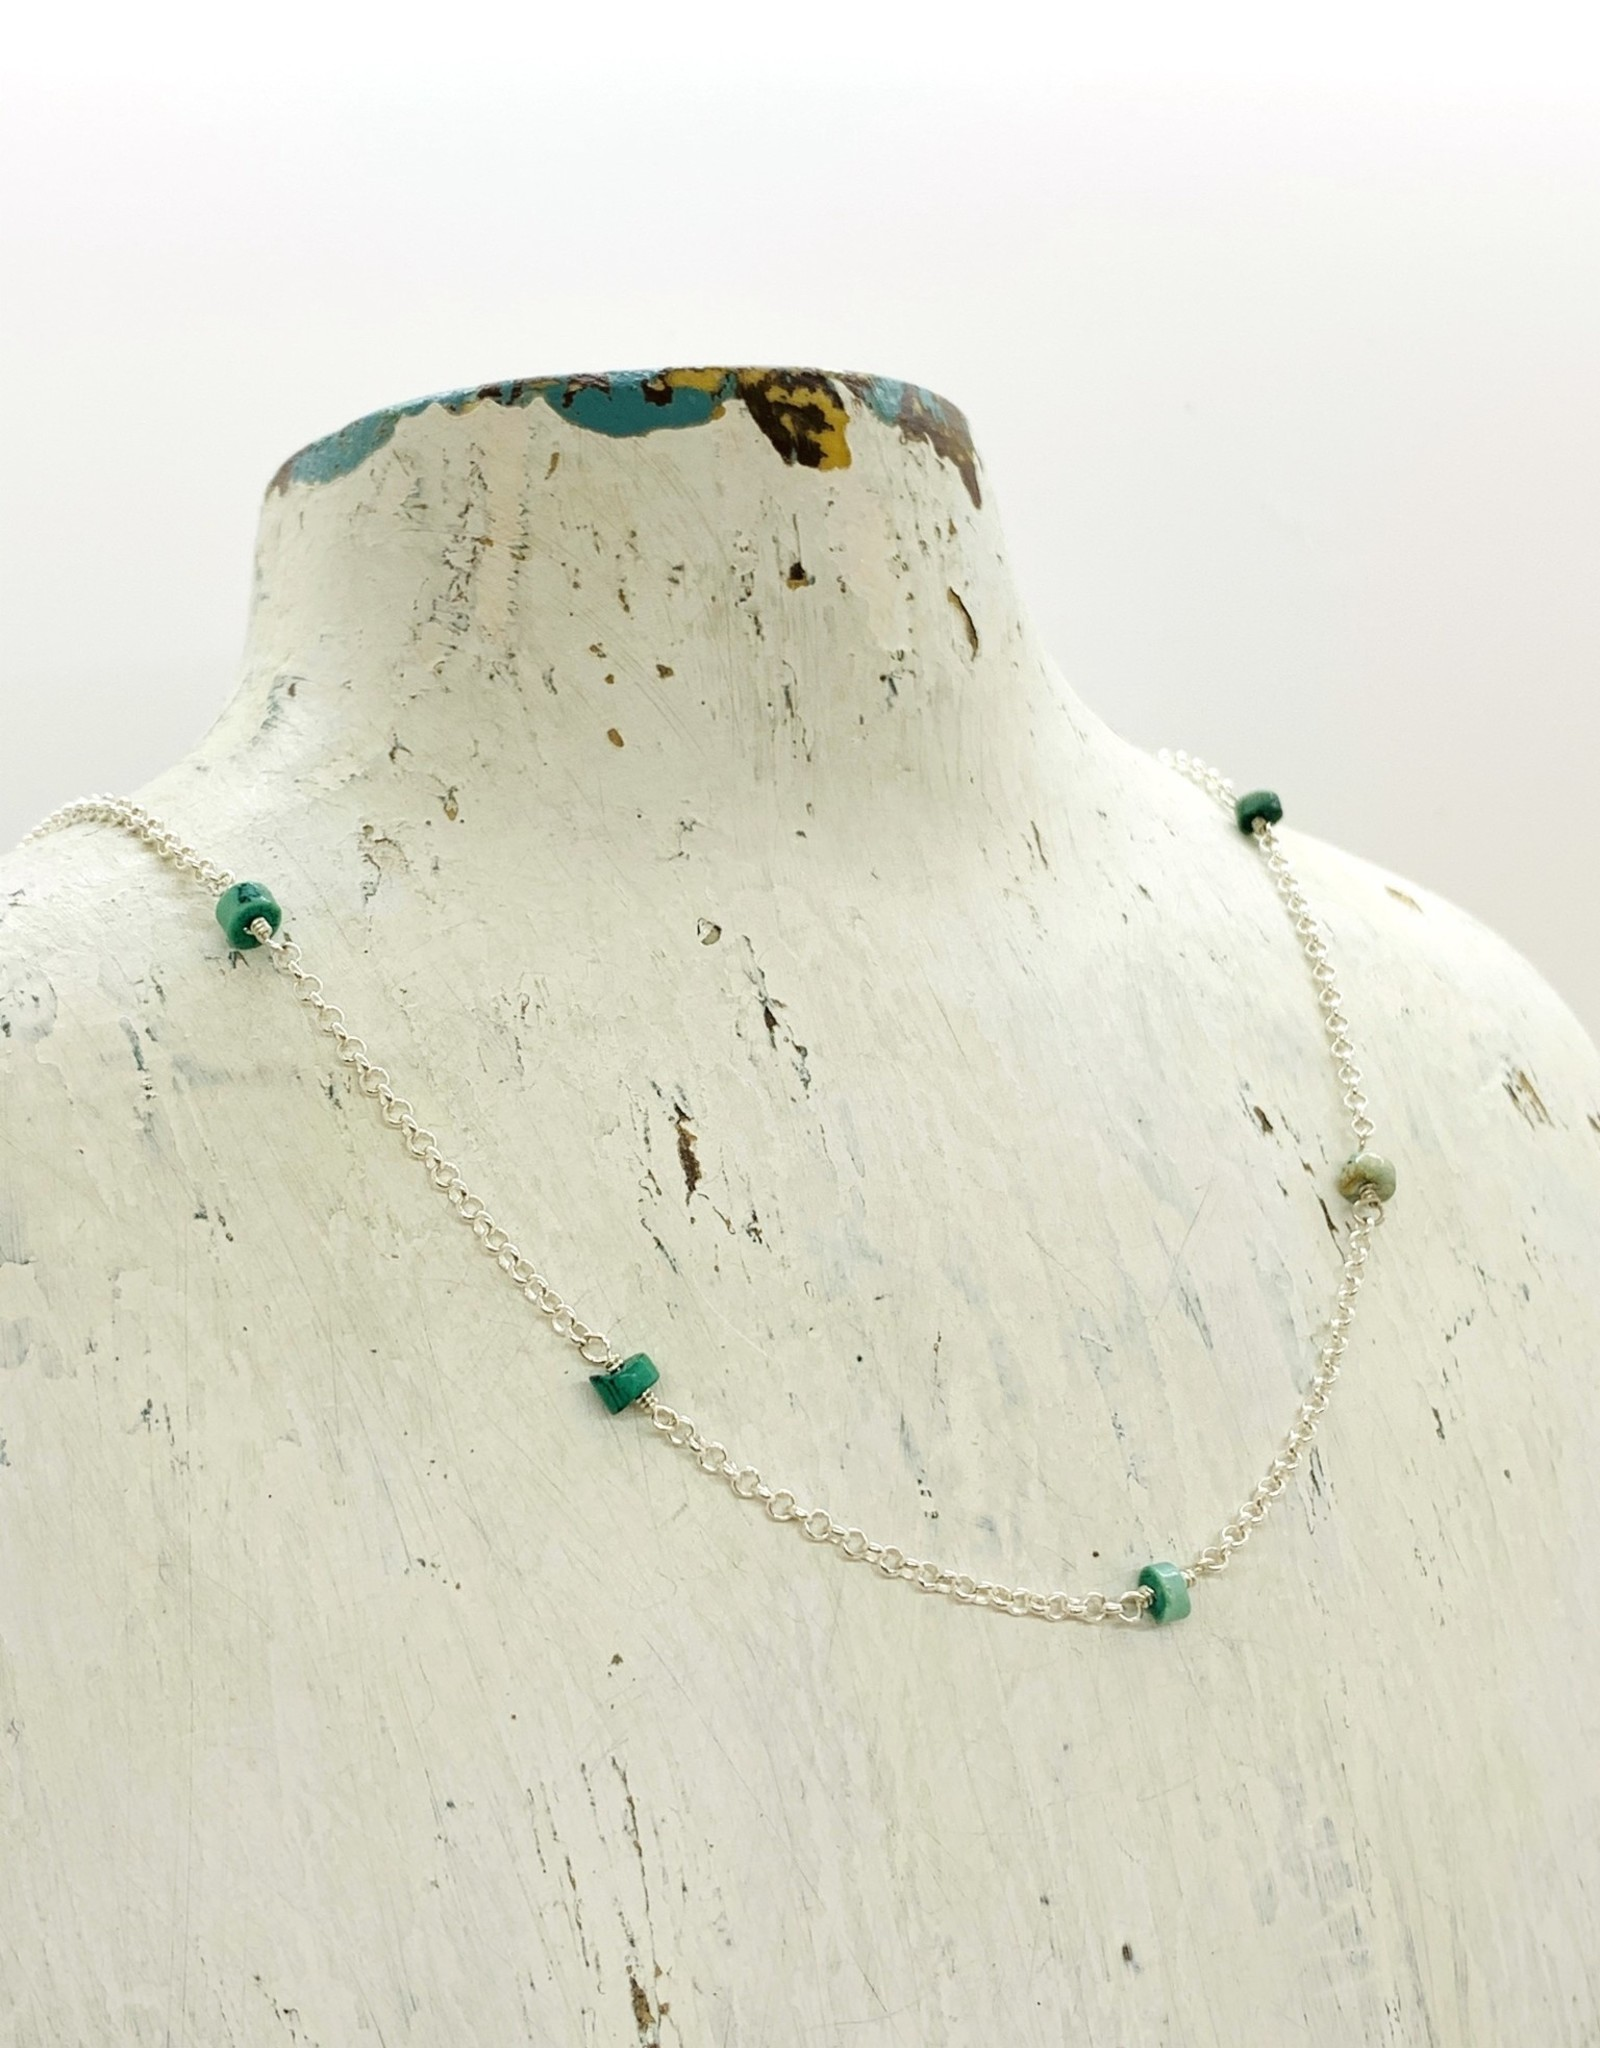 EVANKNOX Handmade Sterling Silver Necklace with turquoise on shiny rolo chain